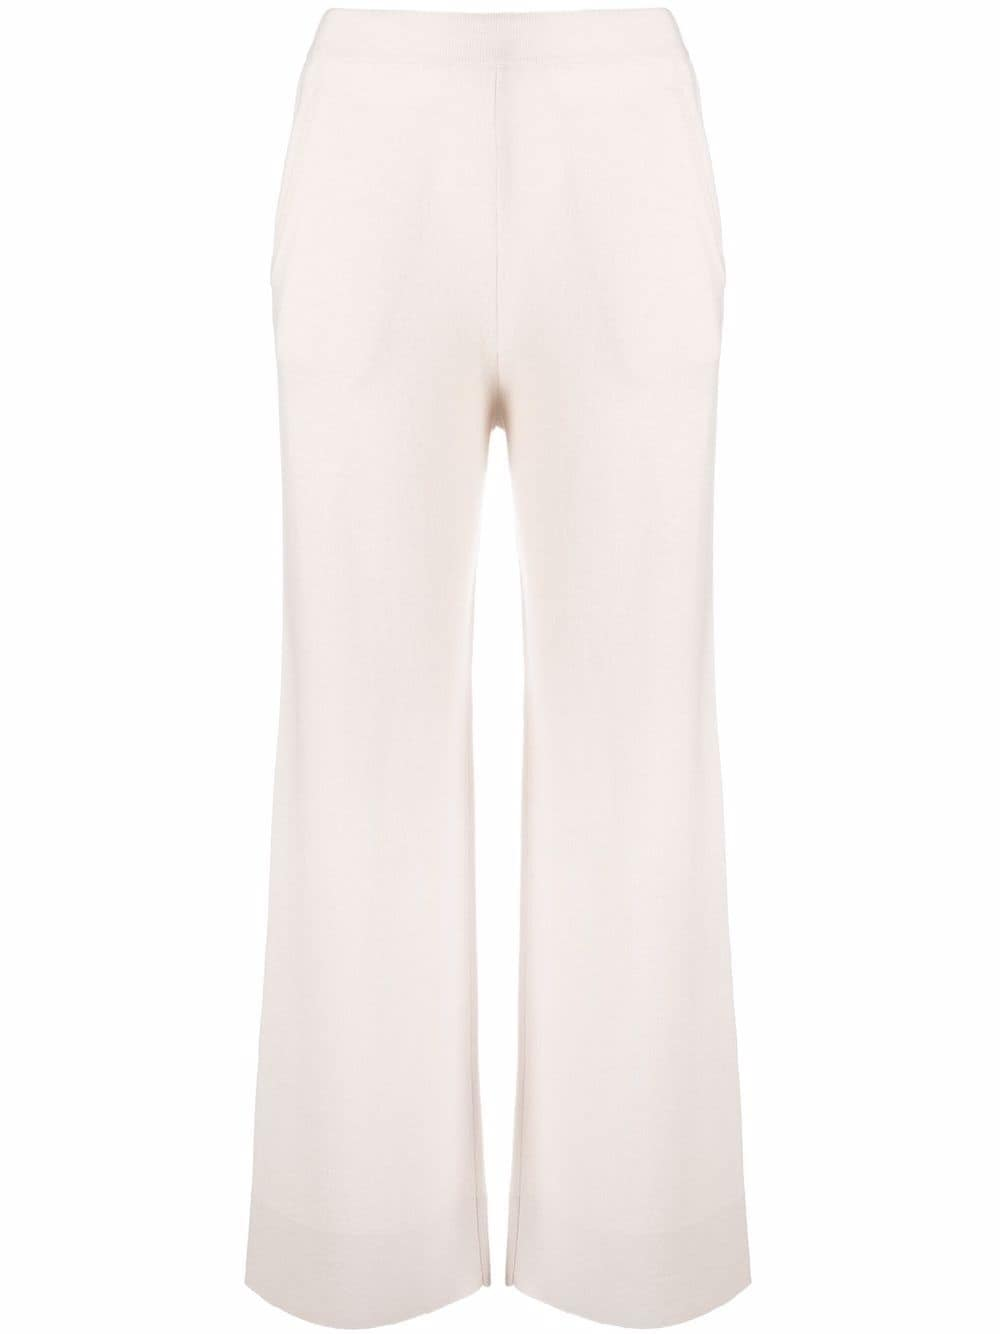 Light beige virgin wool and cashmere wide-leg fine-knit ALLUDE |  | 215/1700641